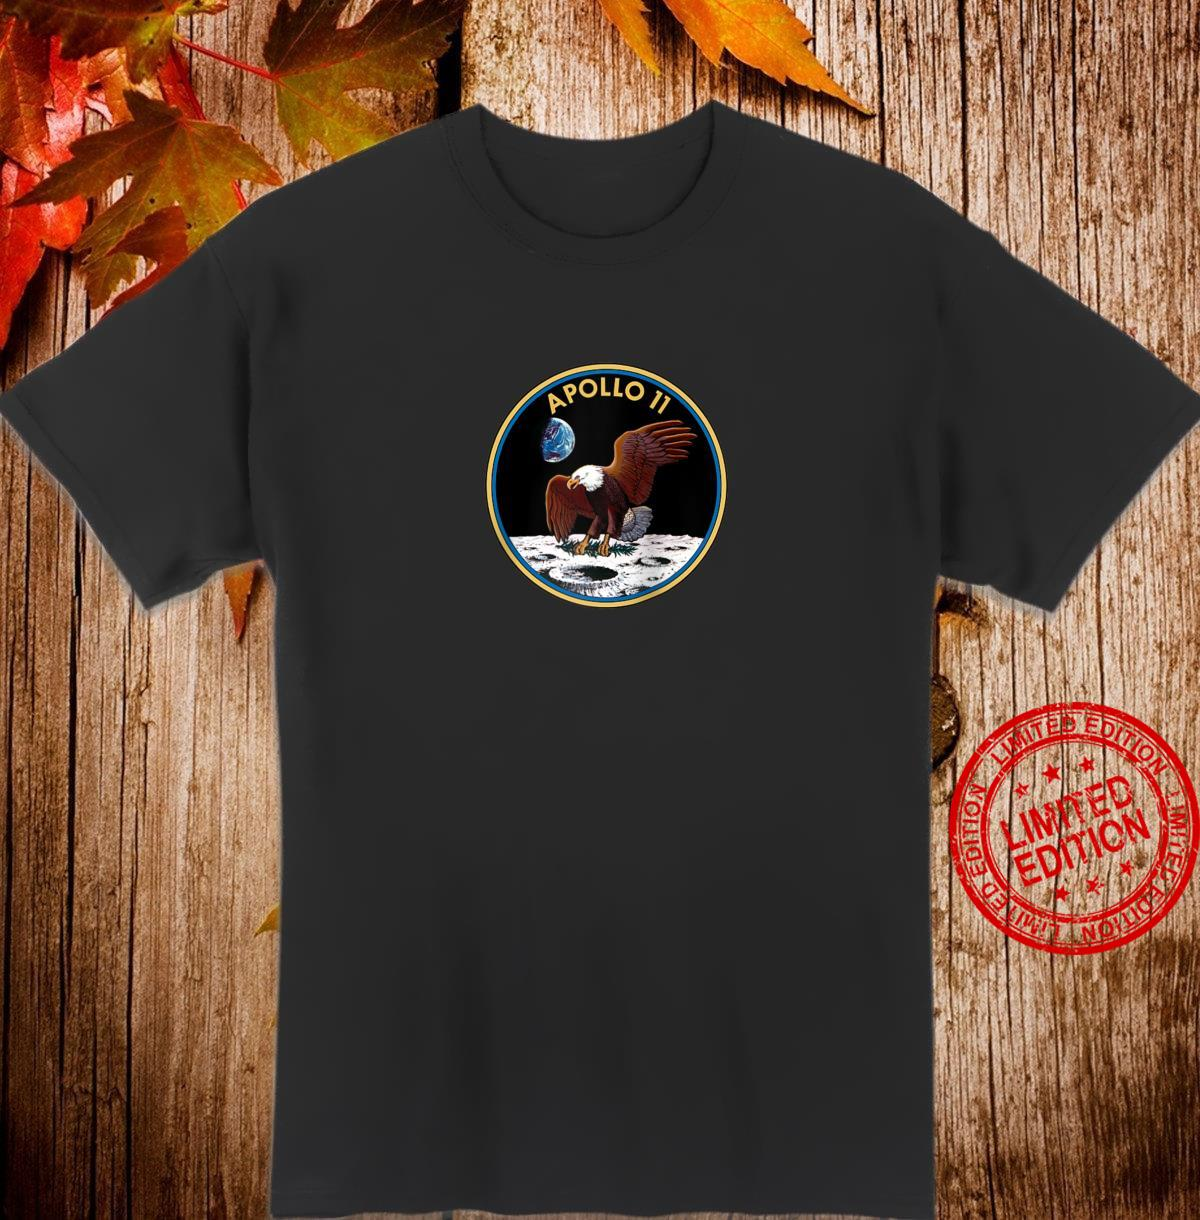 Apollo 11 Mission Patch Insignia Space Exploration Shirt